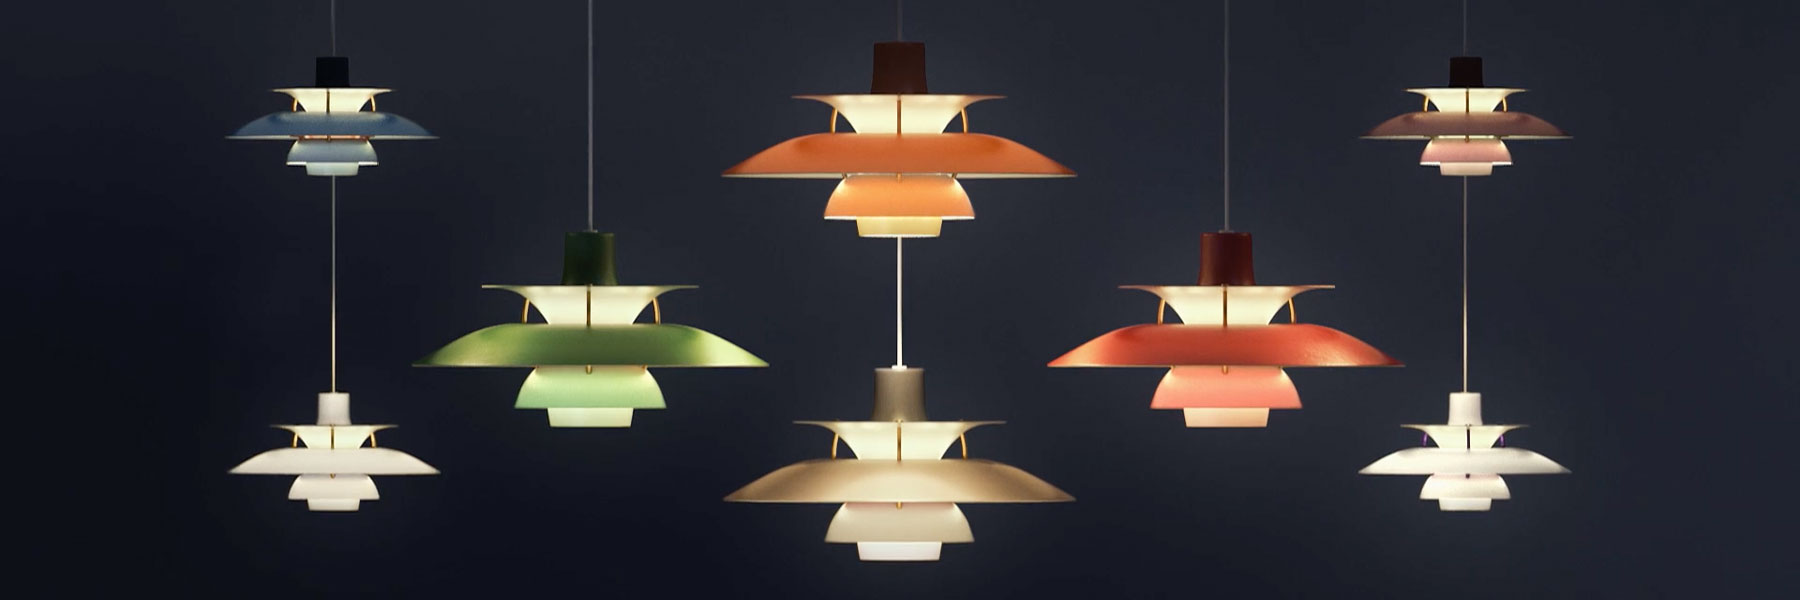 Ph 5 Ph 5 Lamp By Poul Henningsen Celebrates 60th Anniversary With A Movie